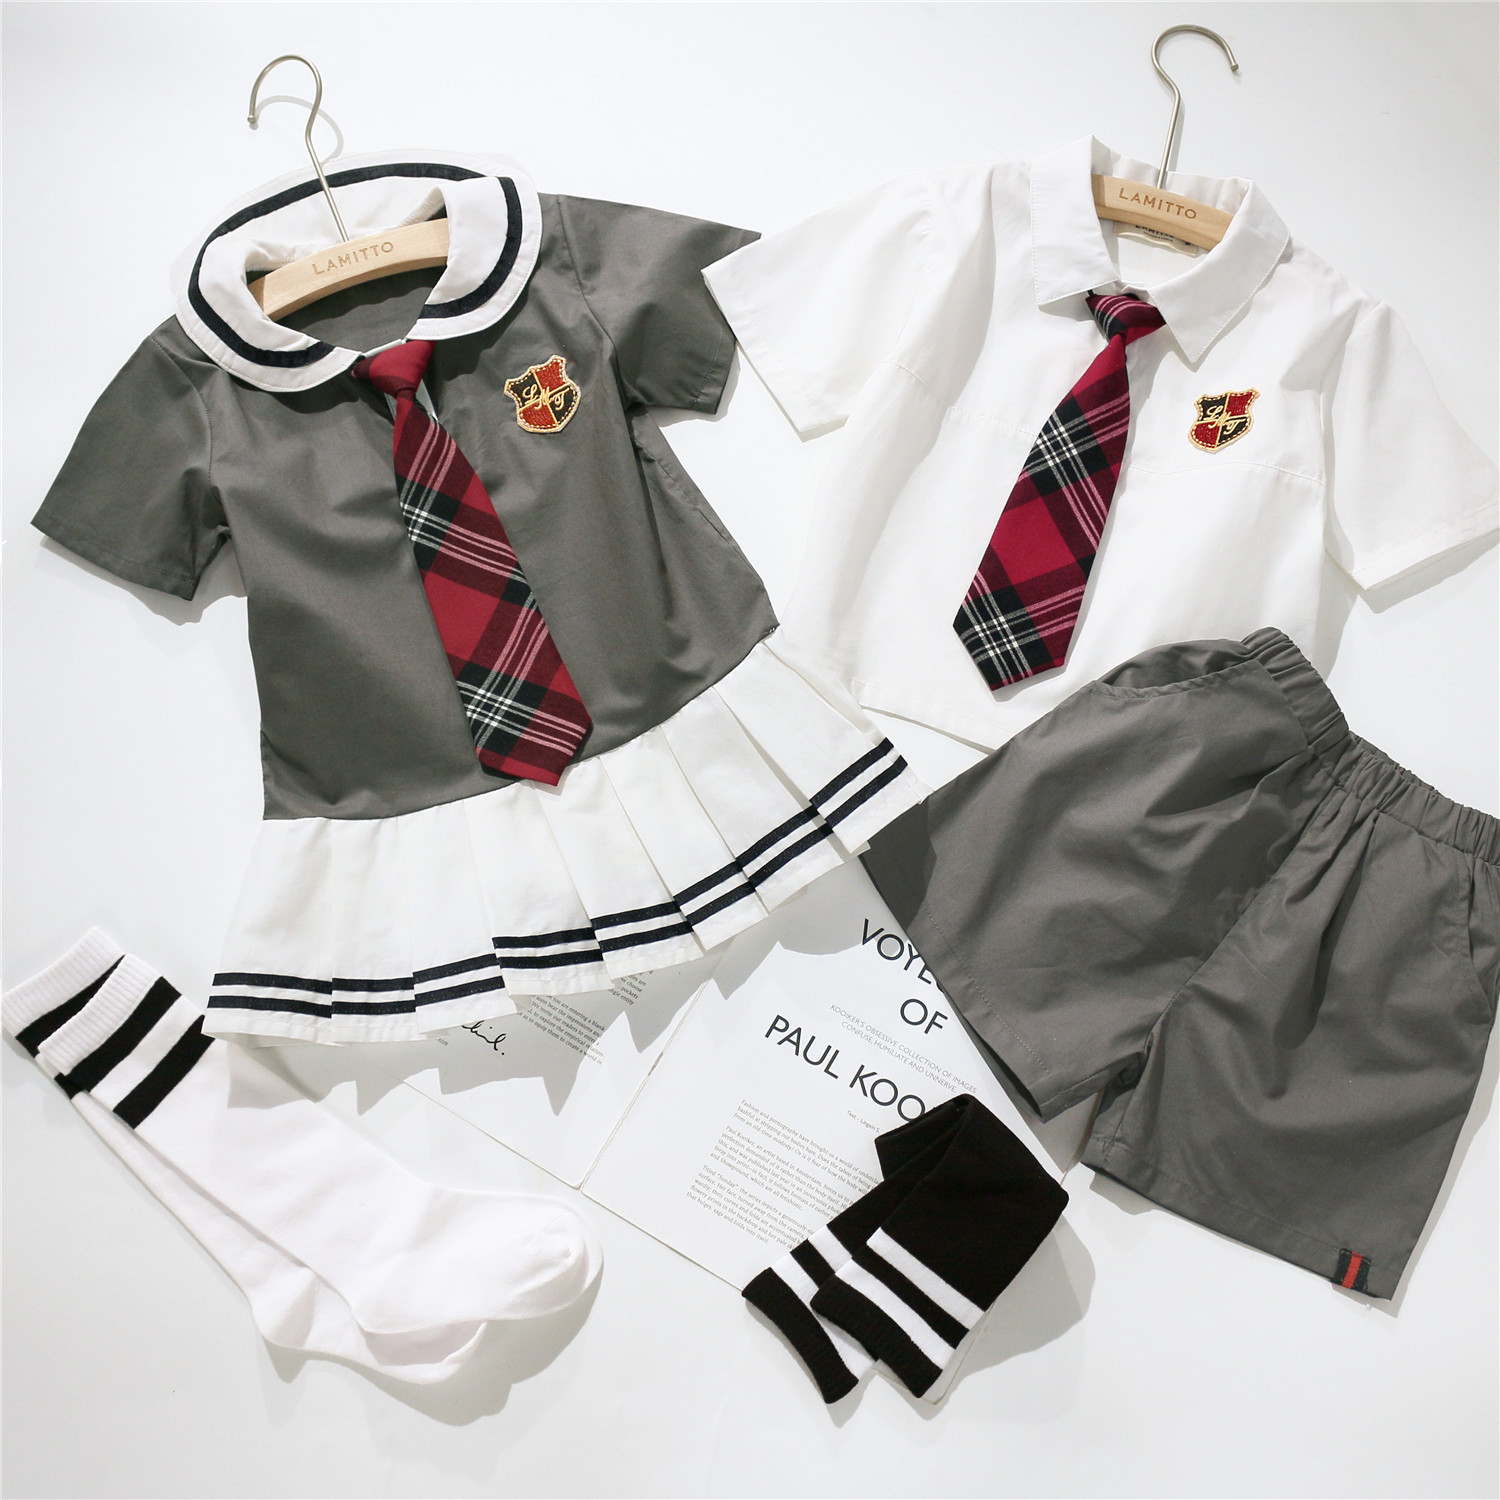 Tonytaobaby Child Models New Set College Navy Style Japanese-style School Uniform Send Tie